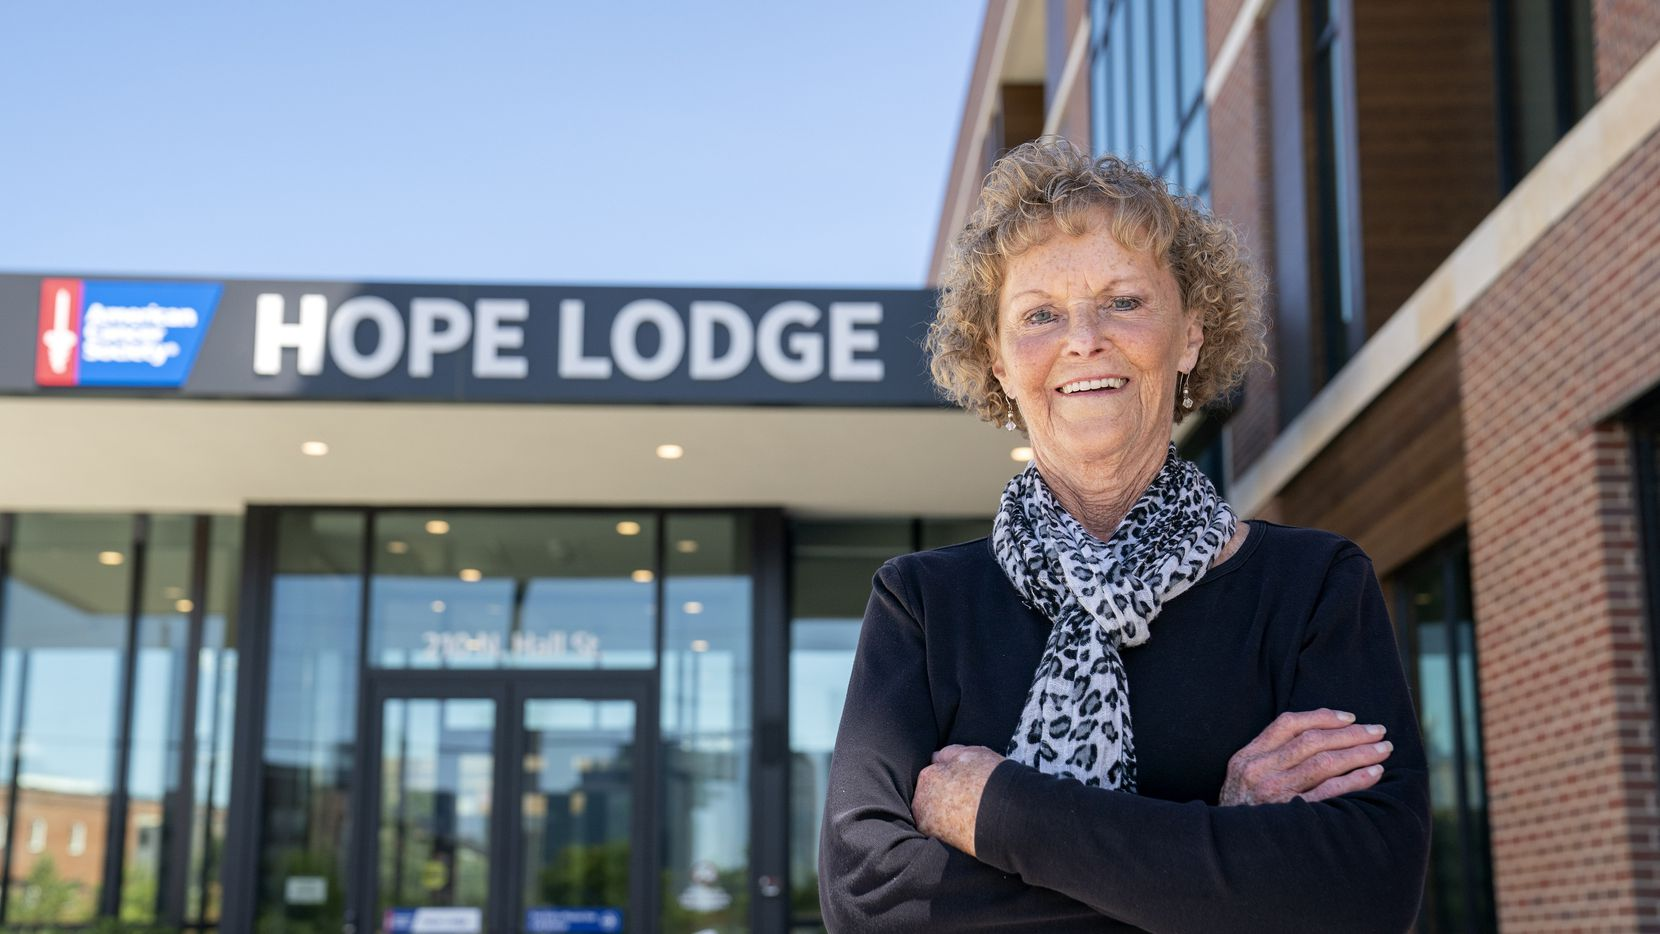 Rose Riley, who drives from Lawton, Okla., to Dallas for treatment at UT Southwestern, was the first person to stay at Hope Lodge.